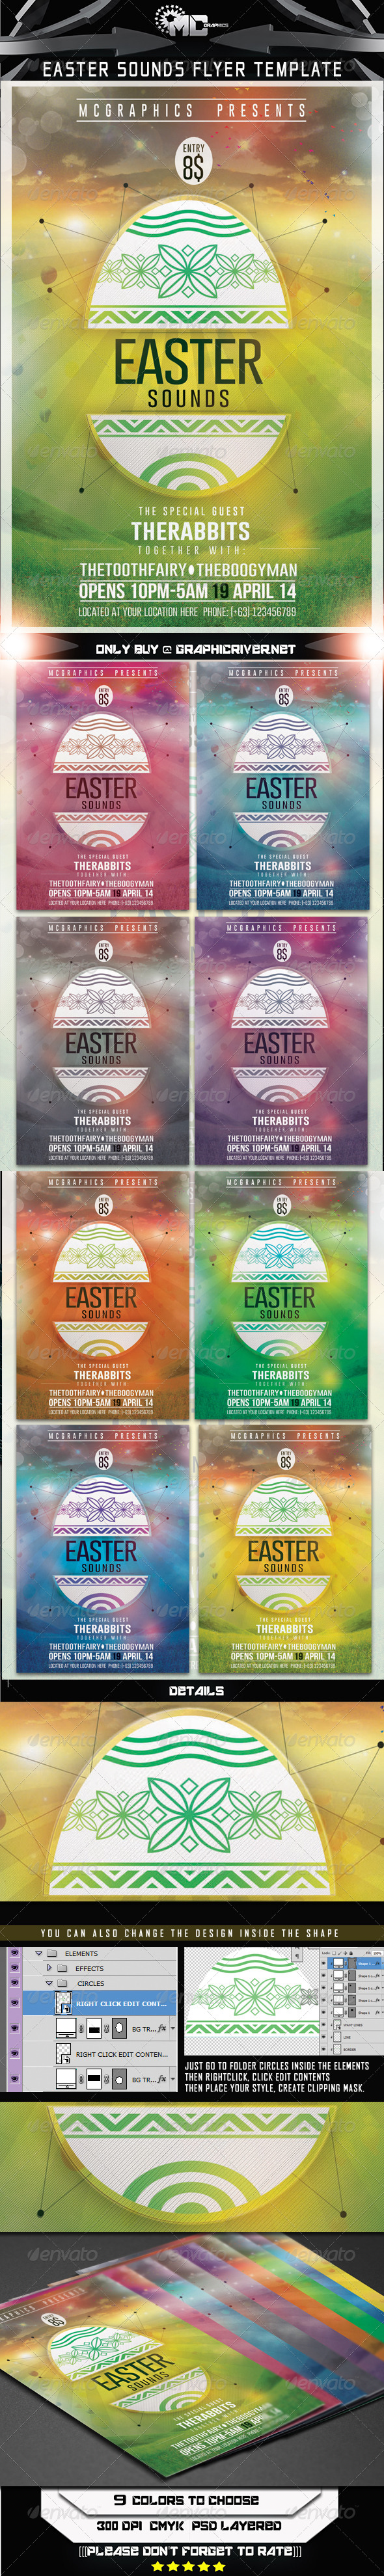 GraphicRiver Easter Sounds Flyer Template 7414993